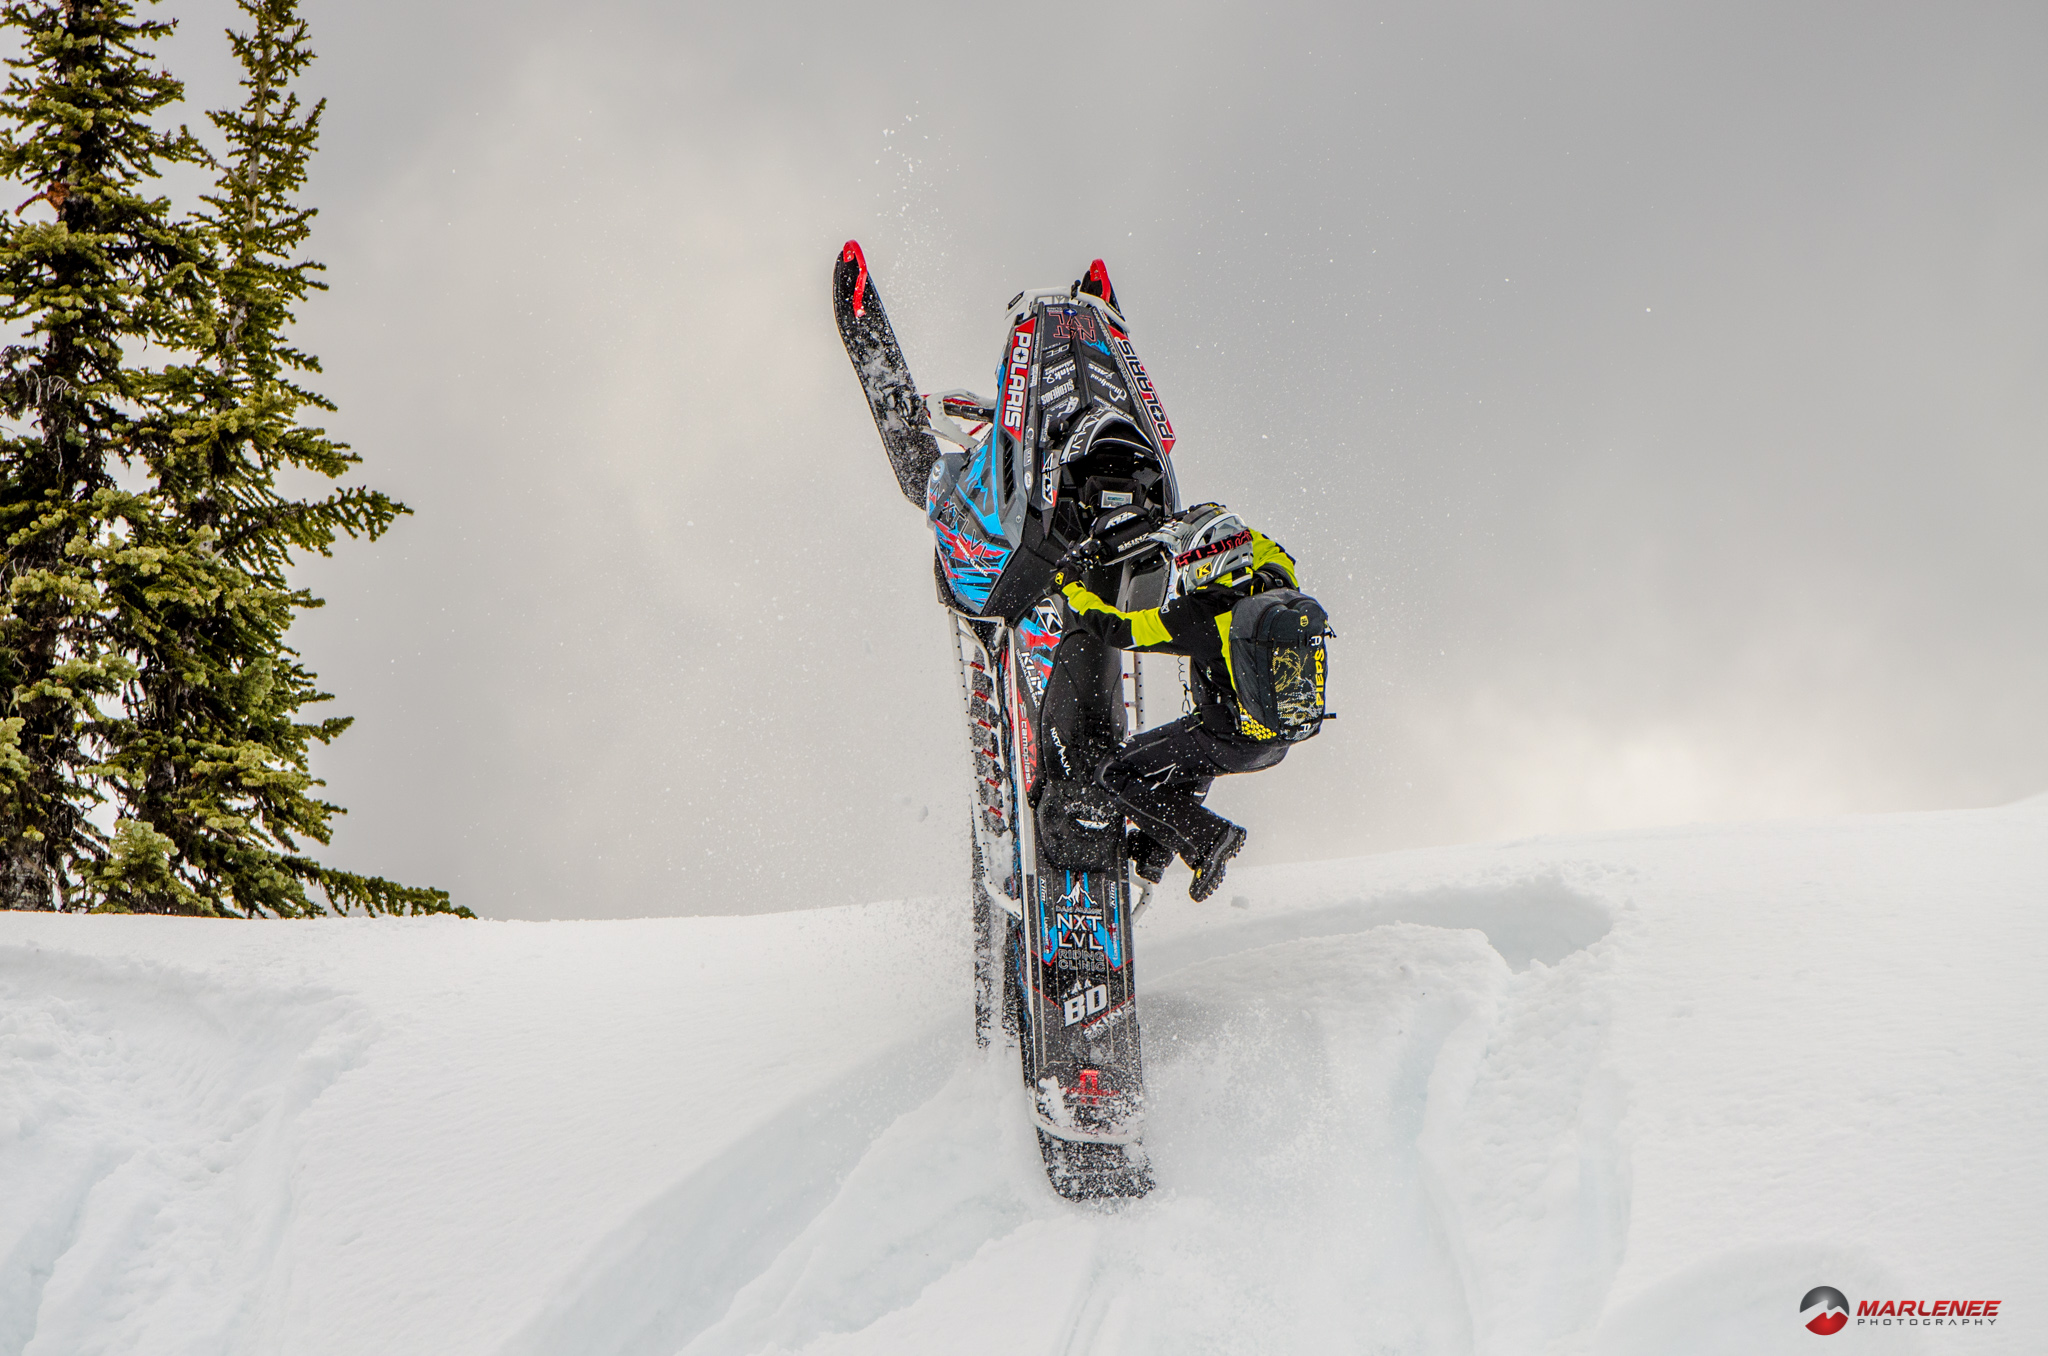 Dan Adams executes a perfect hop-over pirouette in Revelstoke, BC